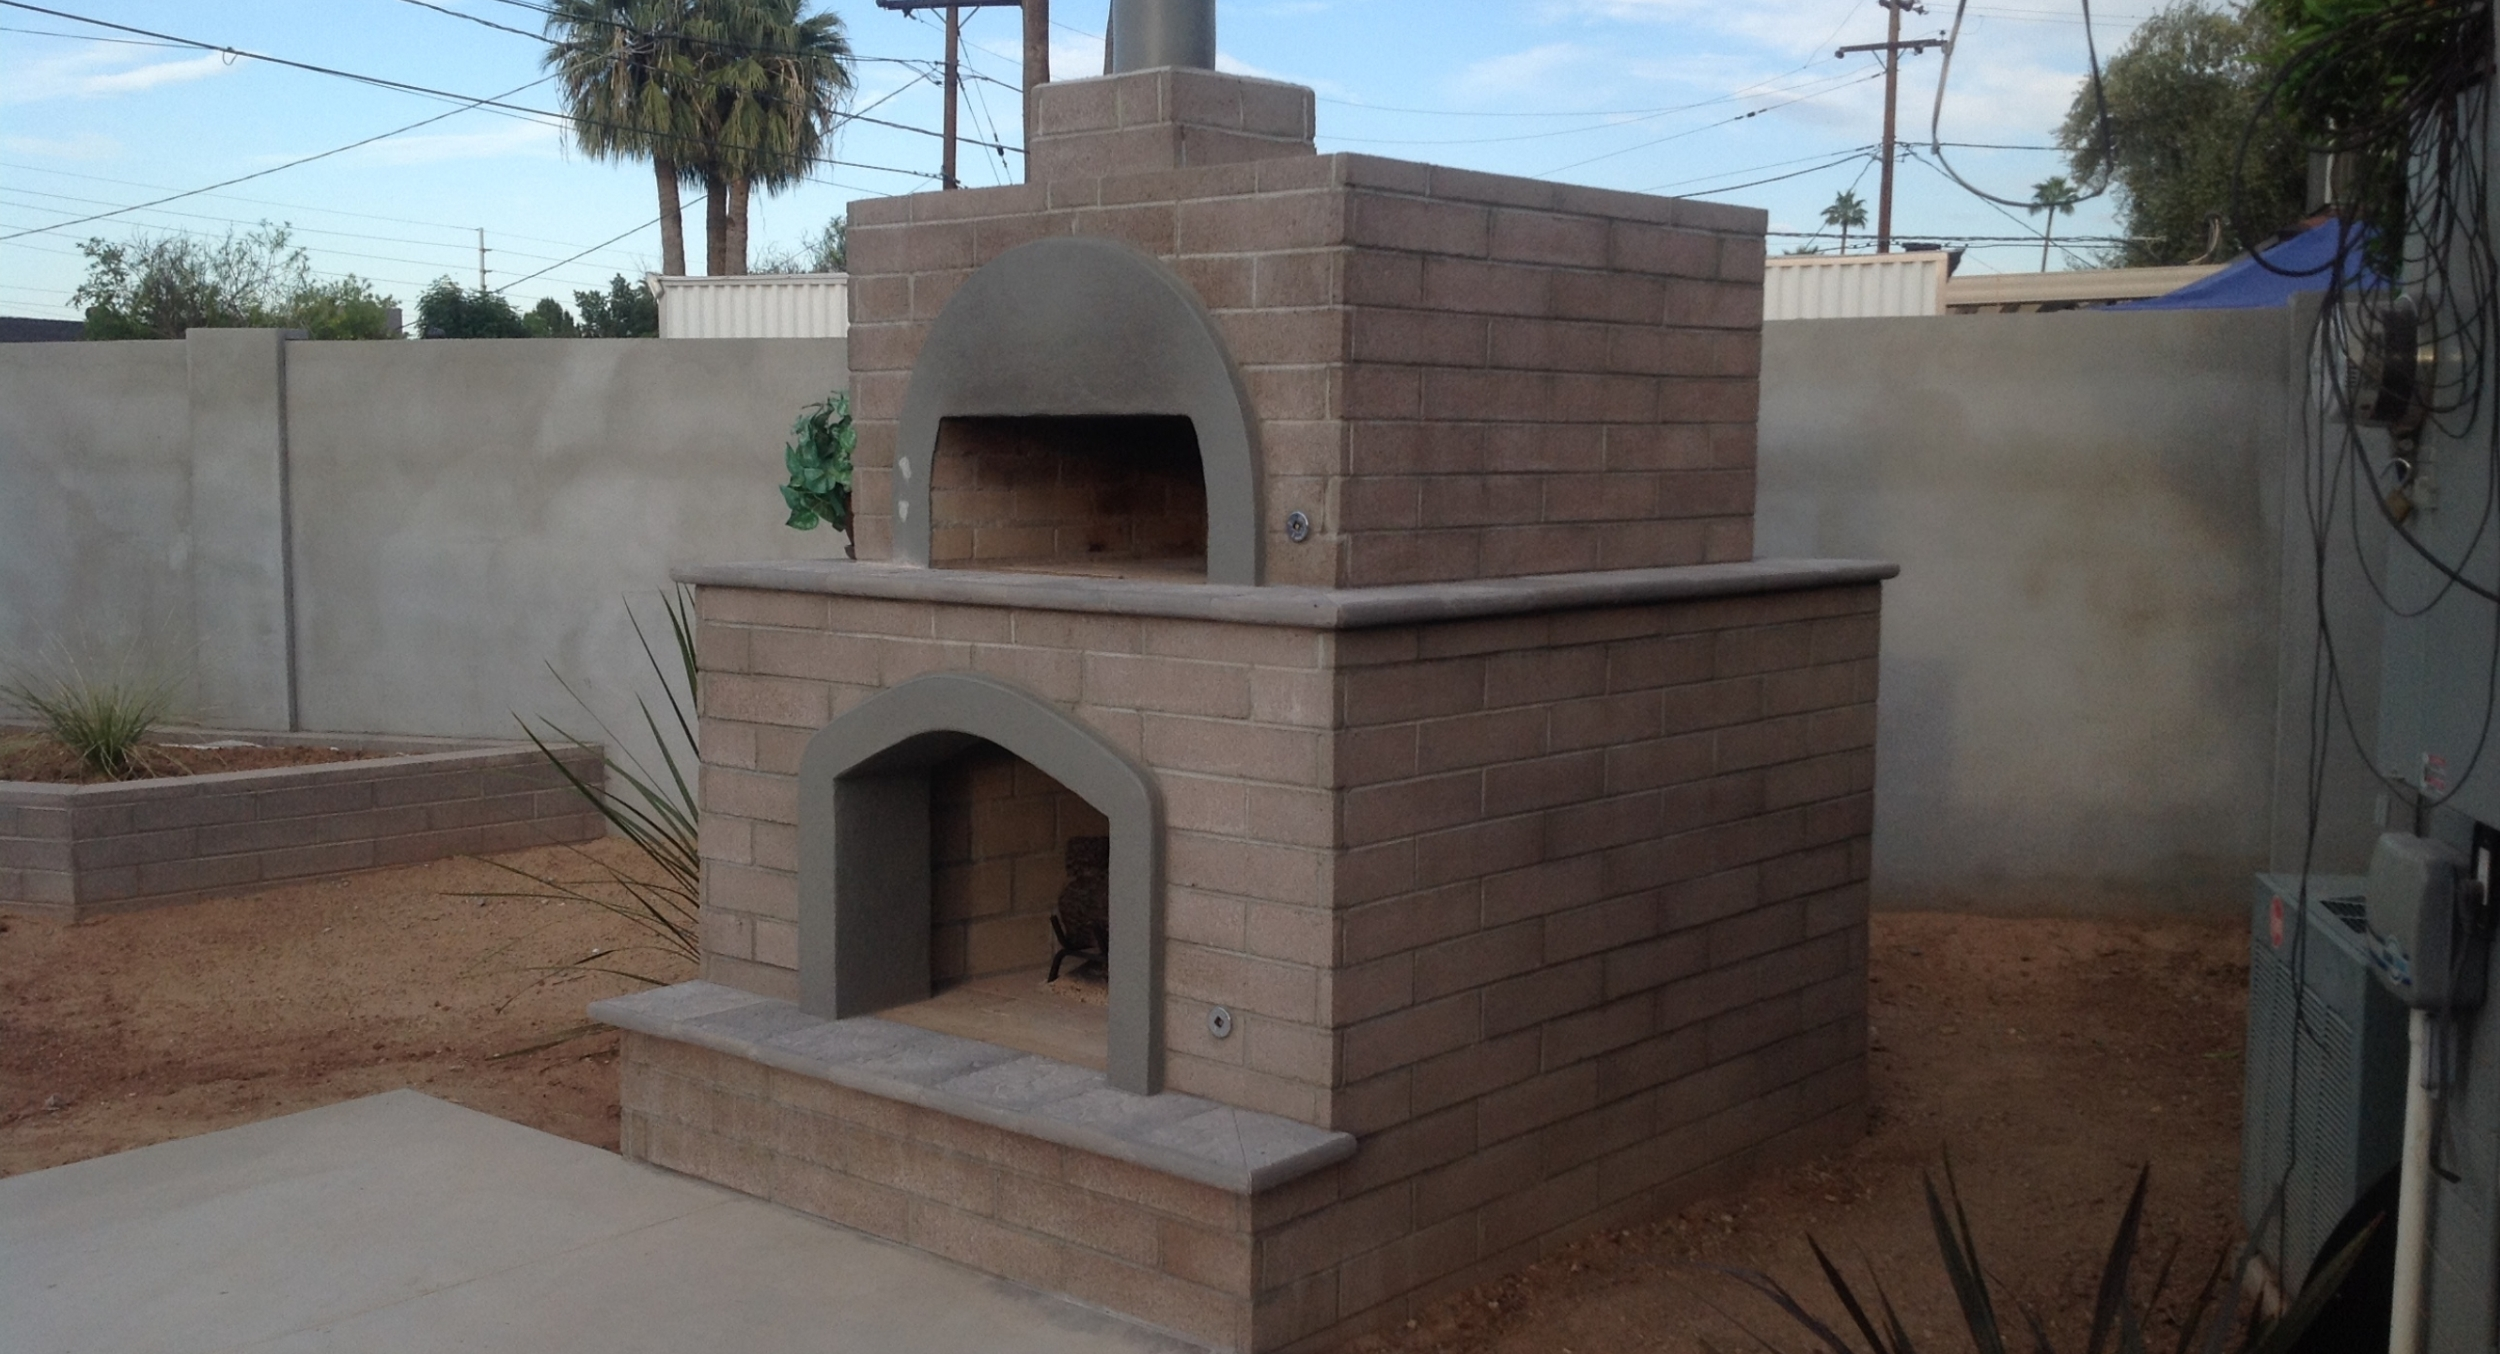 What's the best style for outdoor pizza ovens? Phoenix homeowners selected this muted warm brick for their outdoor fireplace/pizza oven combo.